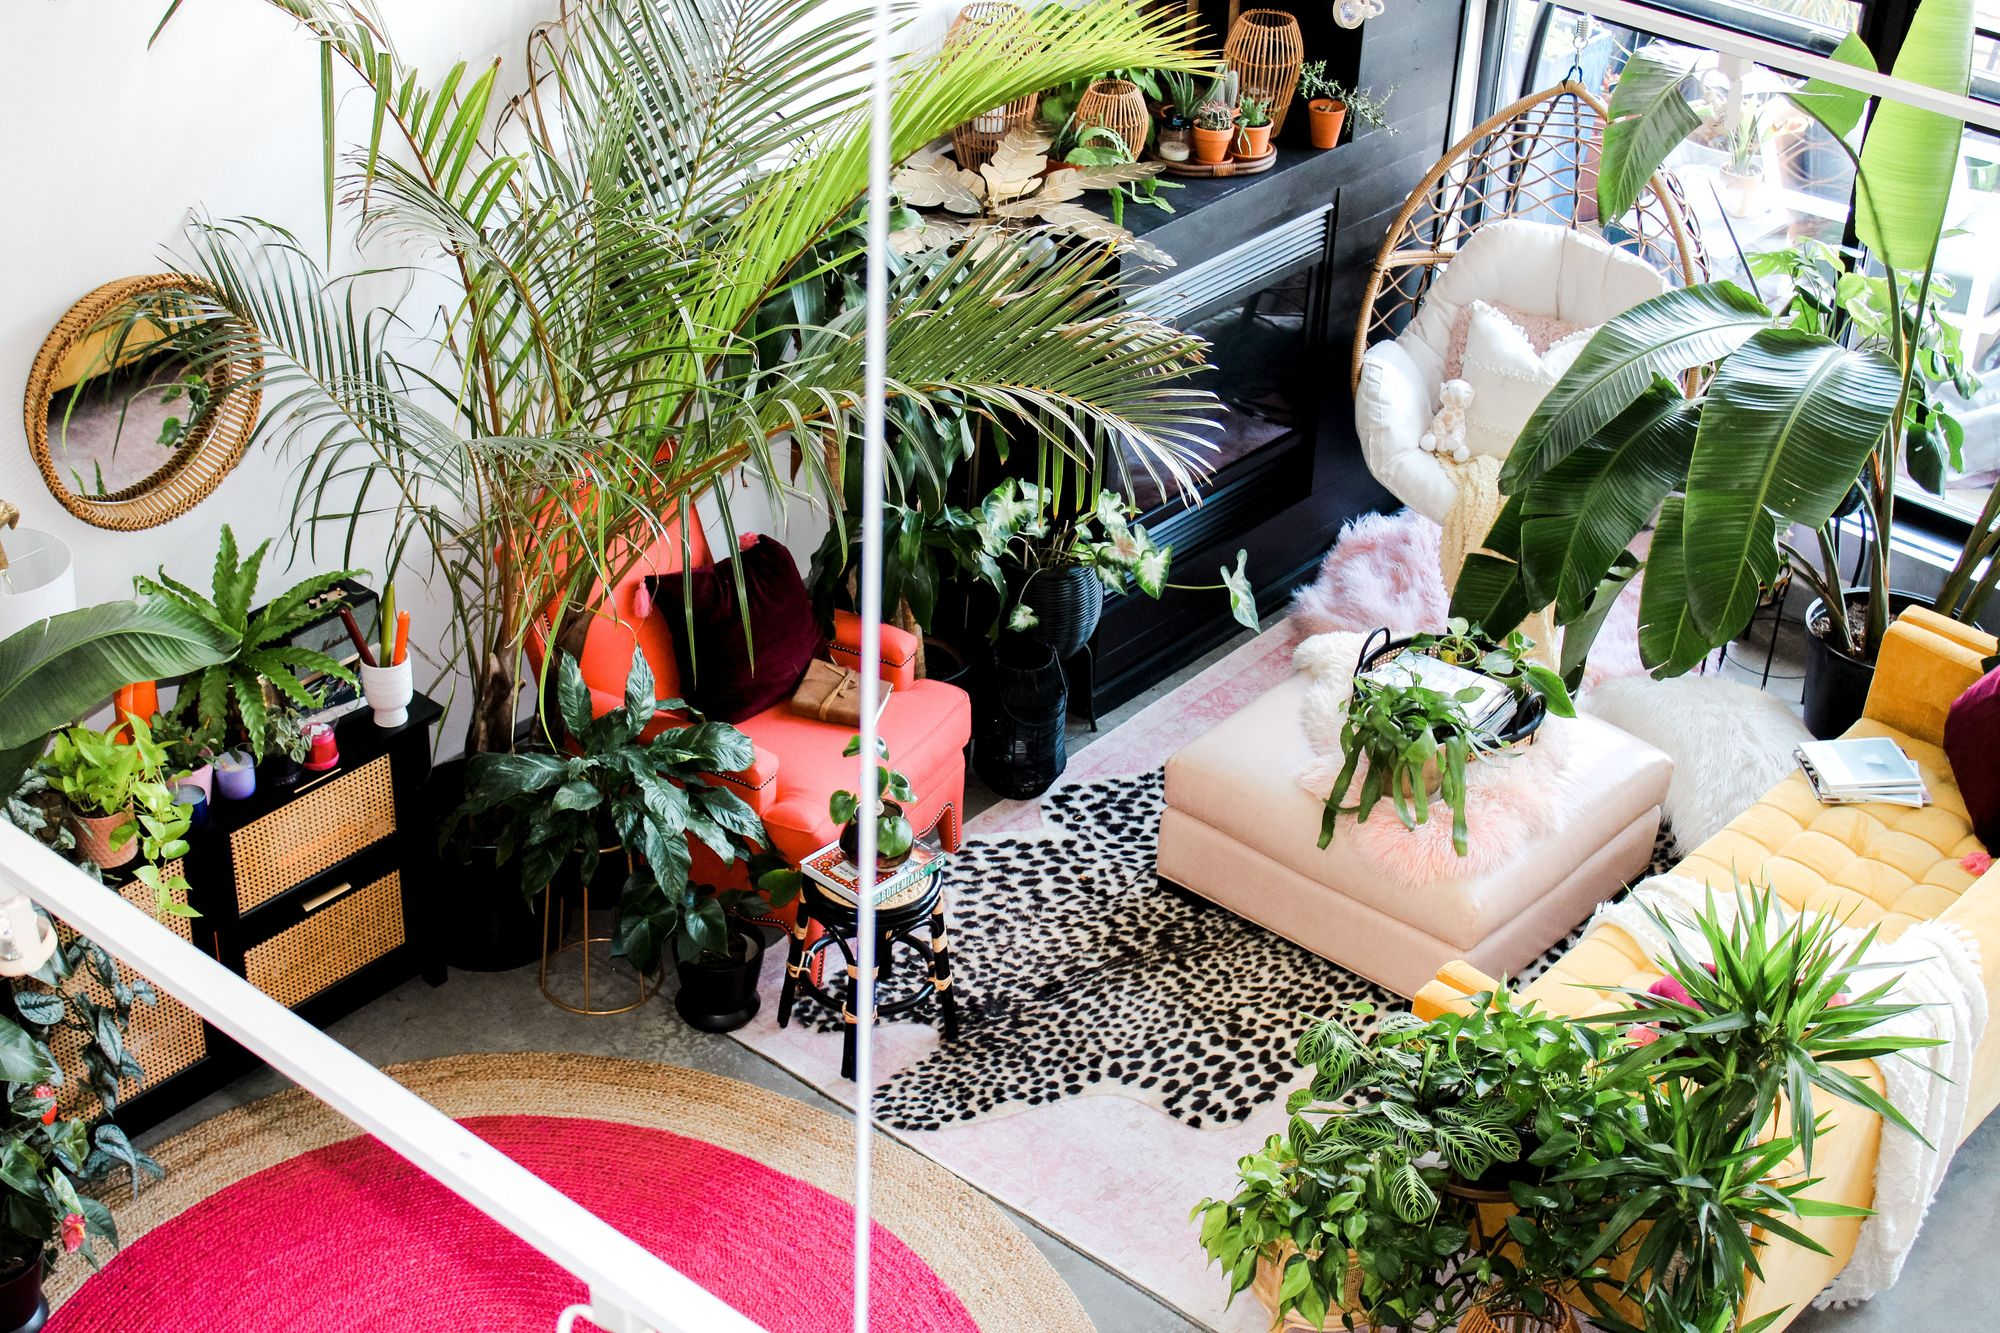 Shayla Owogunni's plant-filled home in northeast Minneapolis.